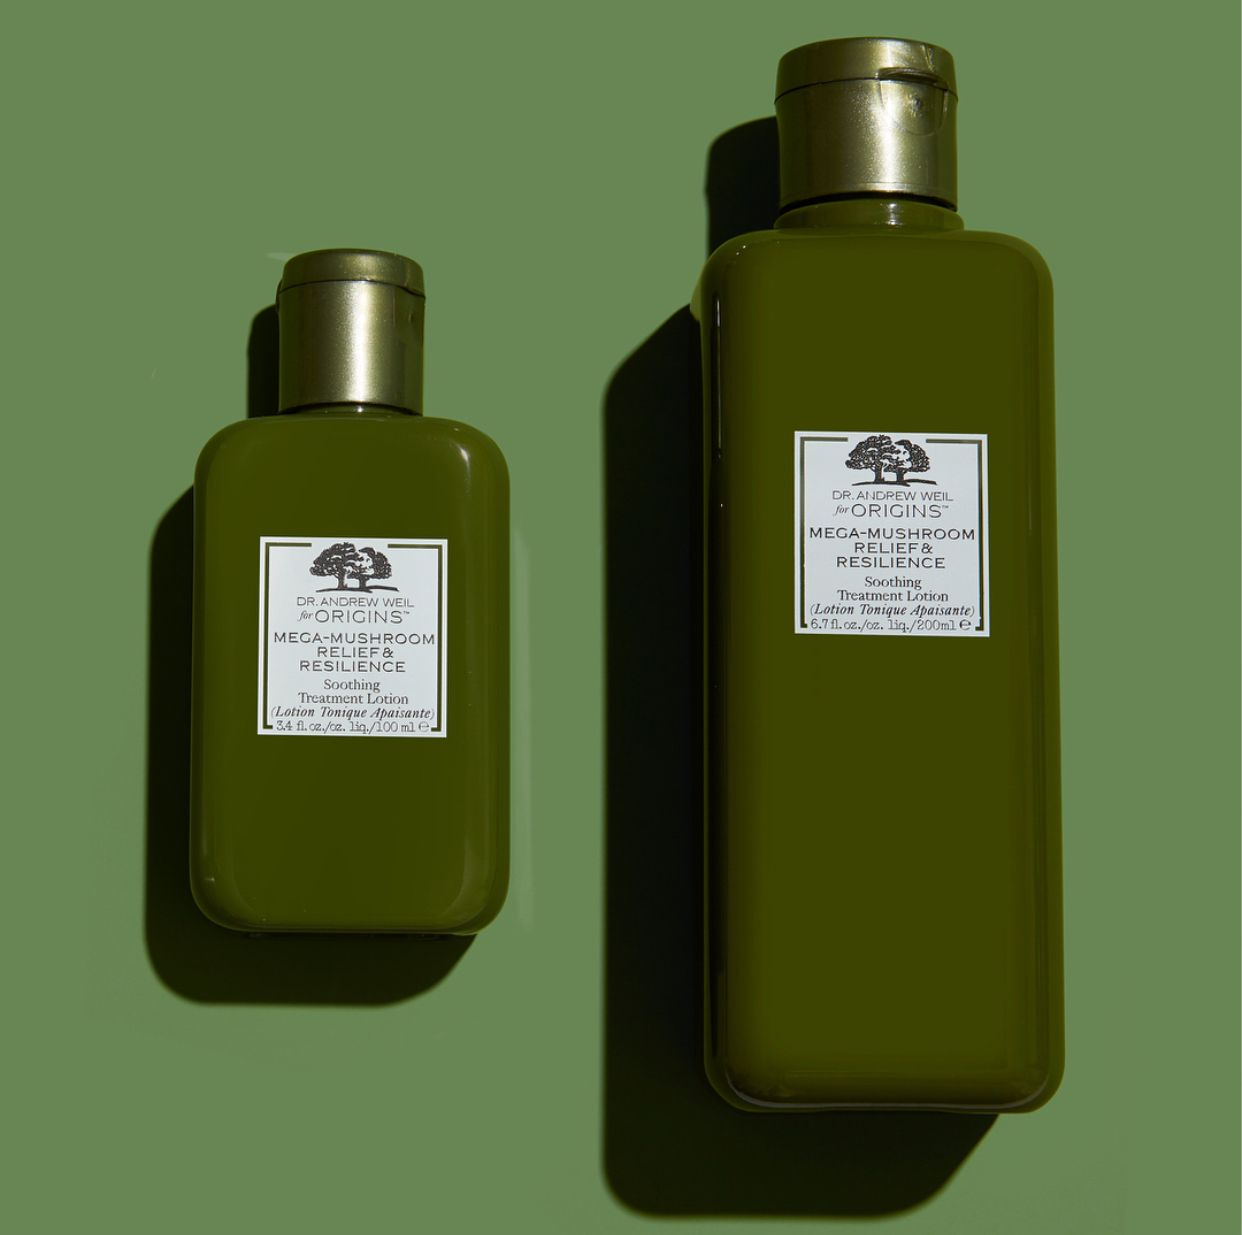 Mega-Mushroom Relief & Resilience Soothing Treatment Lotion, Dr. Andrew Weil for Origins™ at Sephora